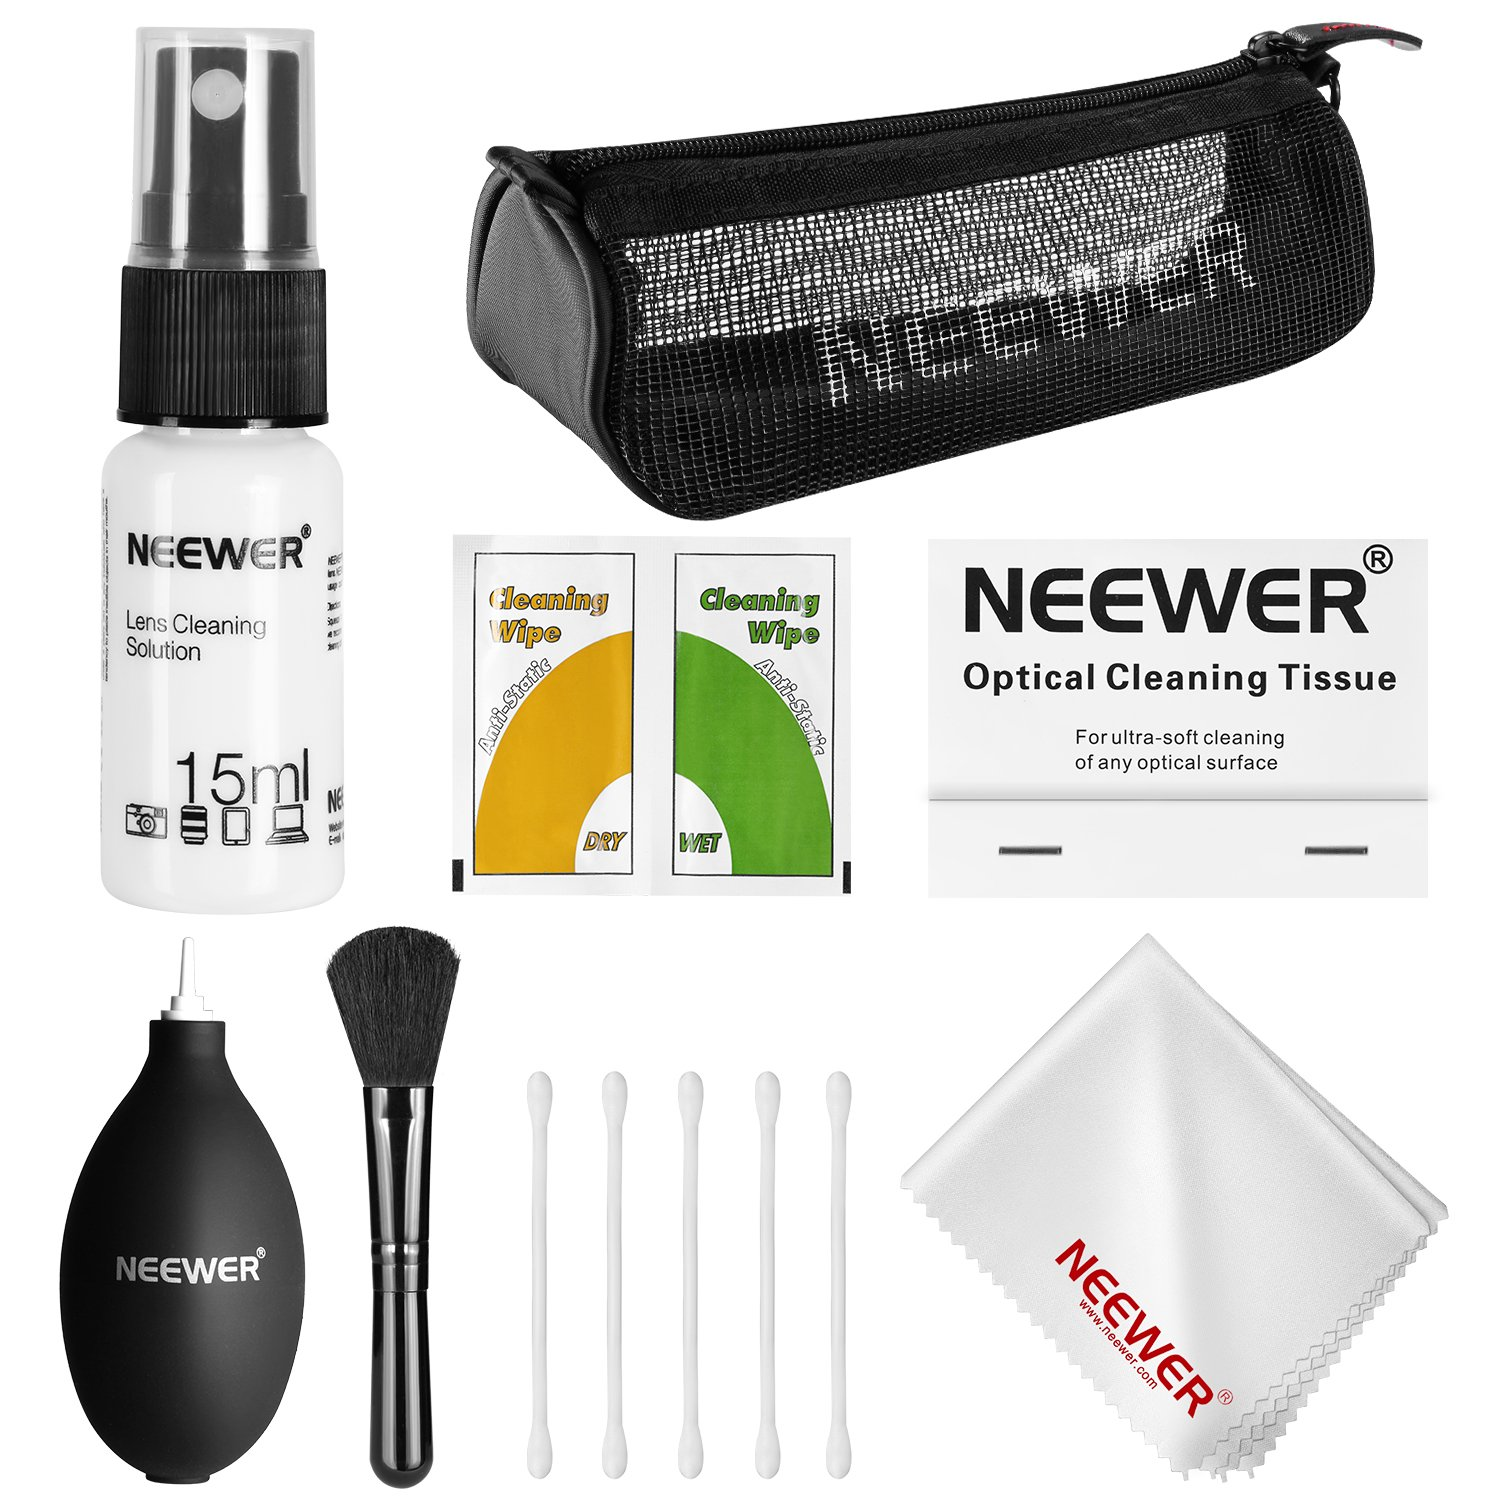 Neewer® 7-in-1 Camera Cleaning Kit for DSLR Lens, Sensor and LCD Screen: sensor cleaner + Brush + Air Blower + Tissue Paper + Empty Spray Bottle + Microfiber Cloth + Cotton Swab + Storage Case 10087127